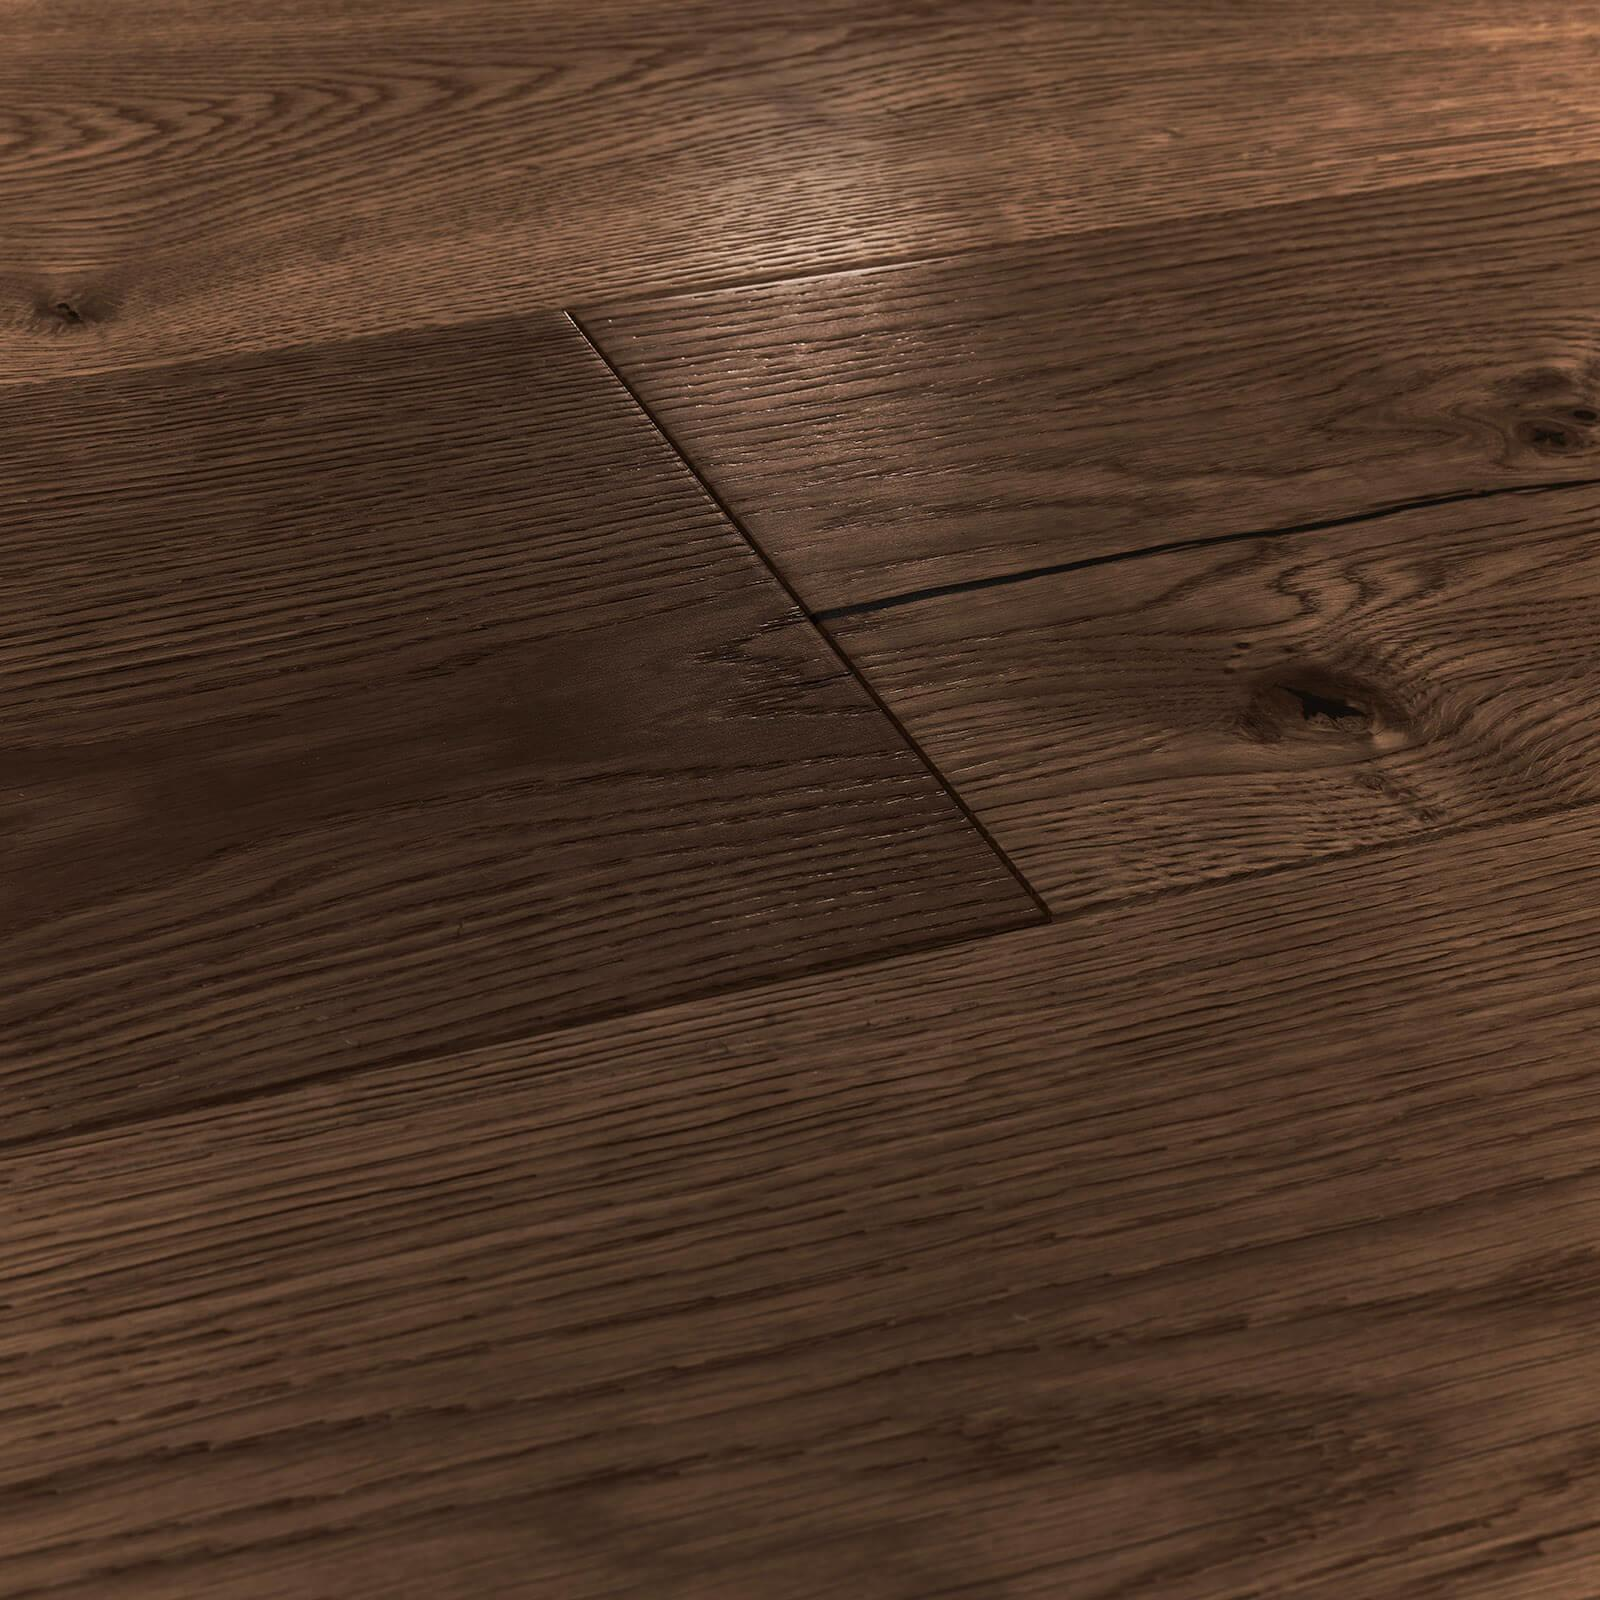 Woodpecker Chepstow Distressed Charcoal Oak Hardwax Oiled Engineered Wood Flooring 240mm 65-AOC-002